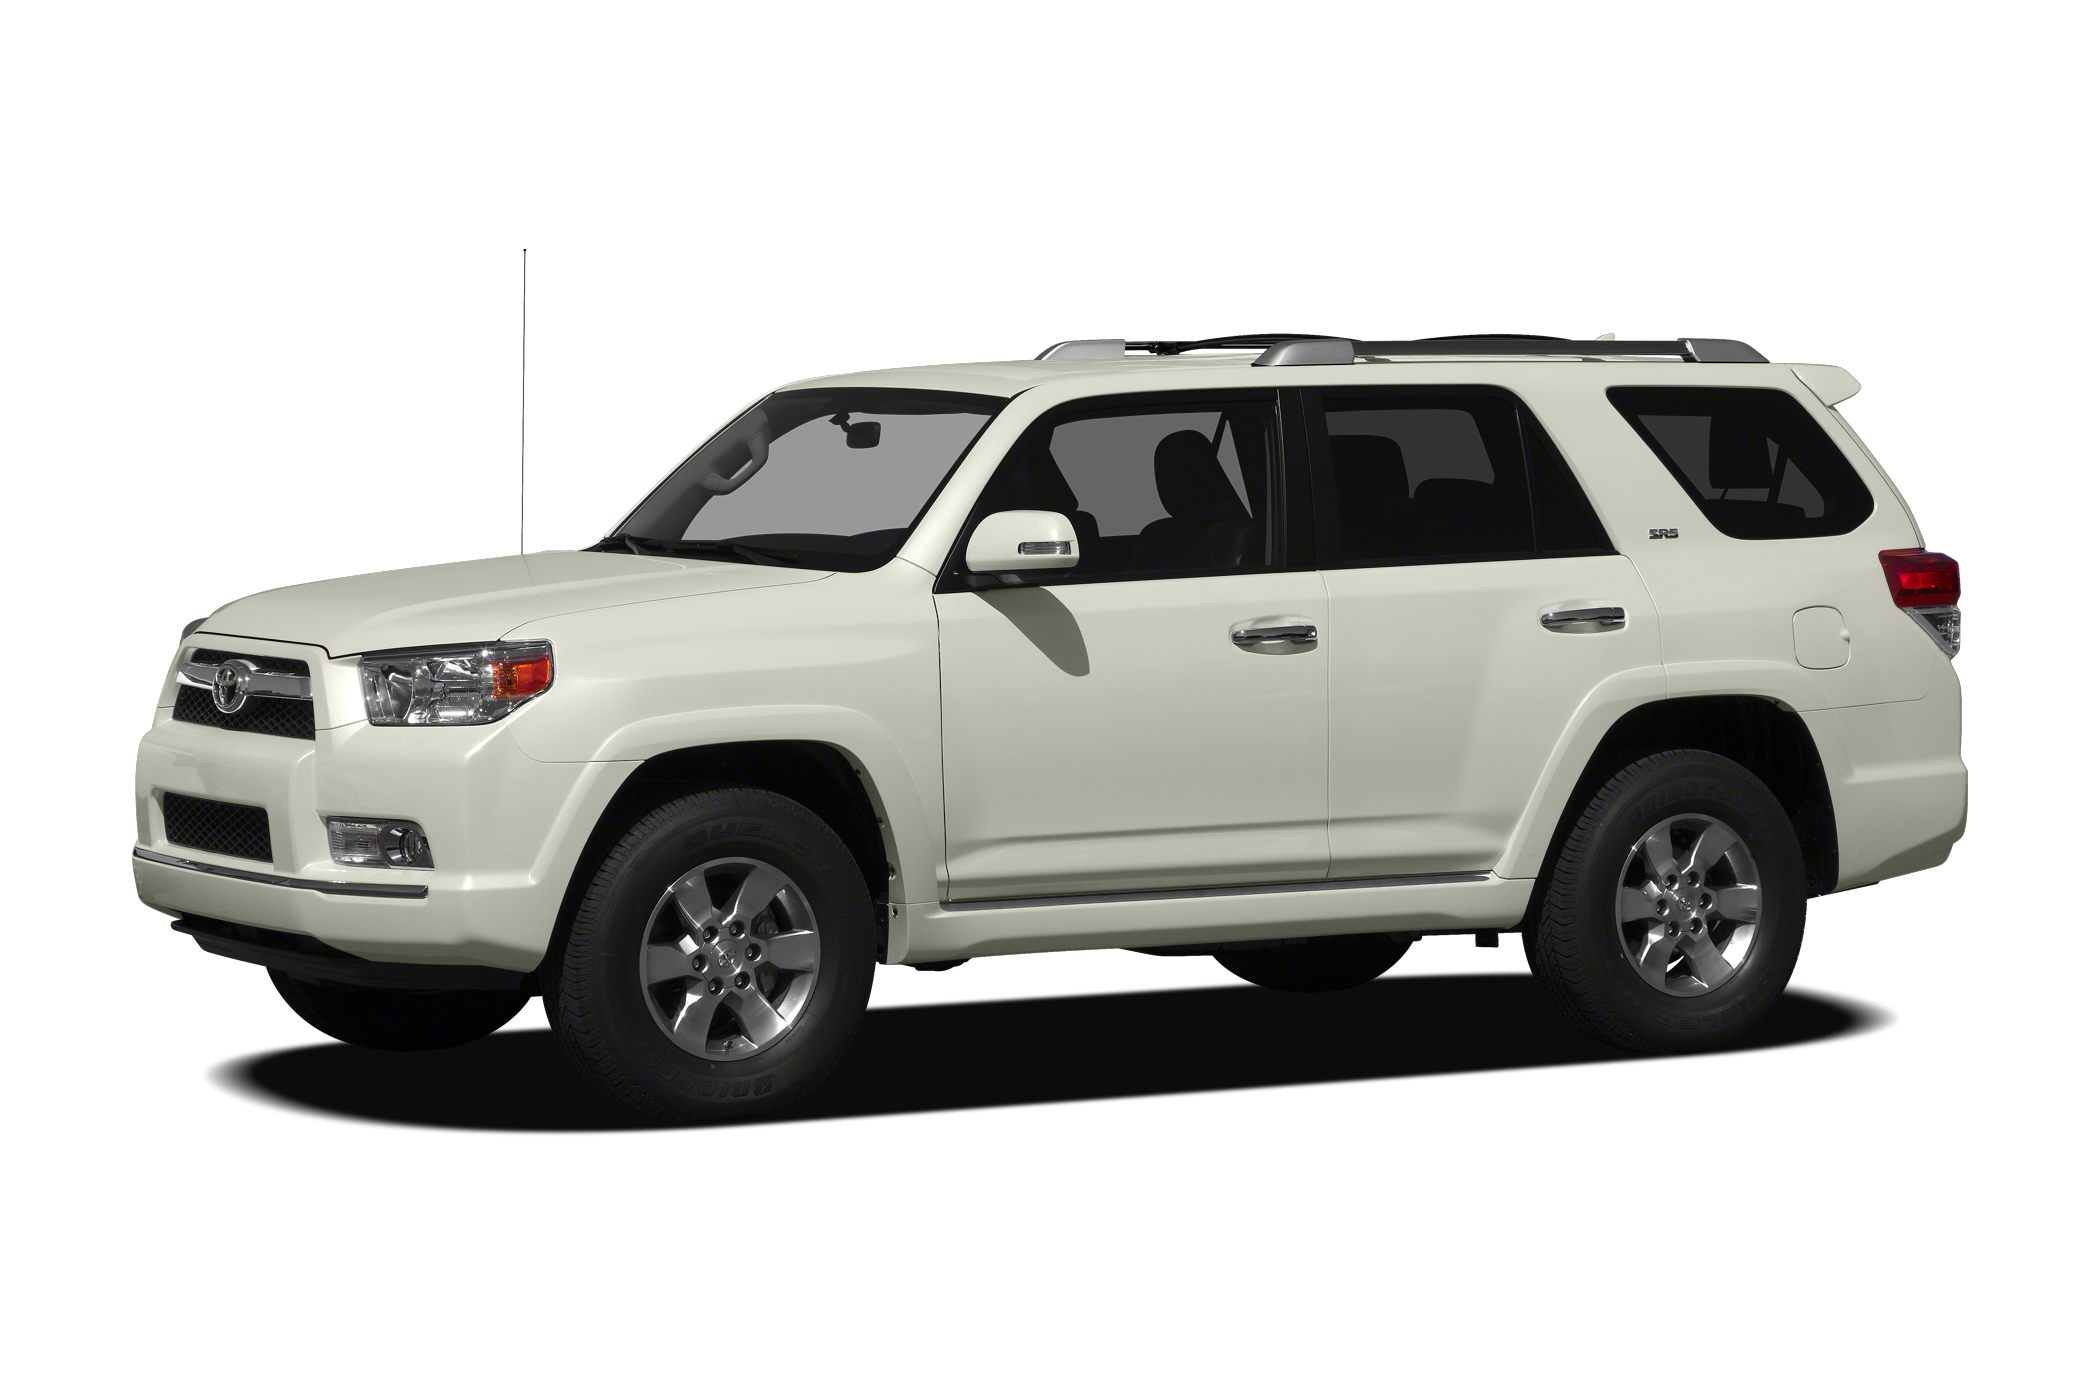 2010 Toyota 4Runner SR5 SUV for sale in Murray for $27,000 with 75,713 miles.